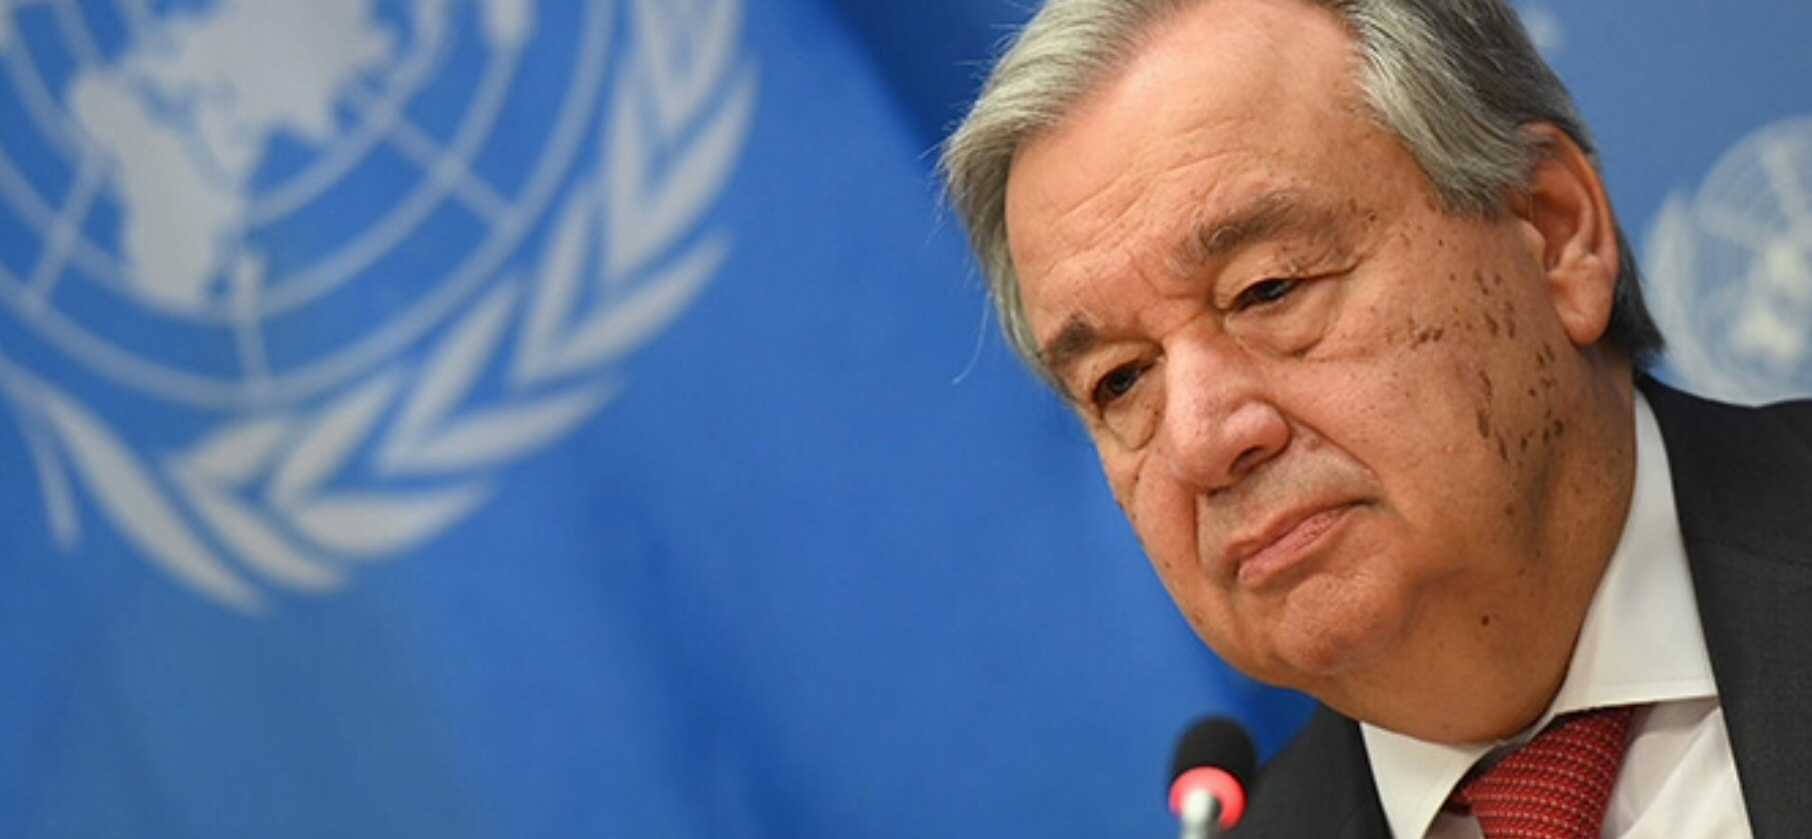 Guterres on foreign interference in Libya